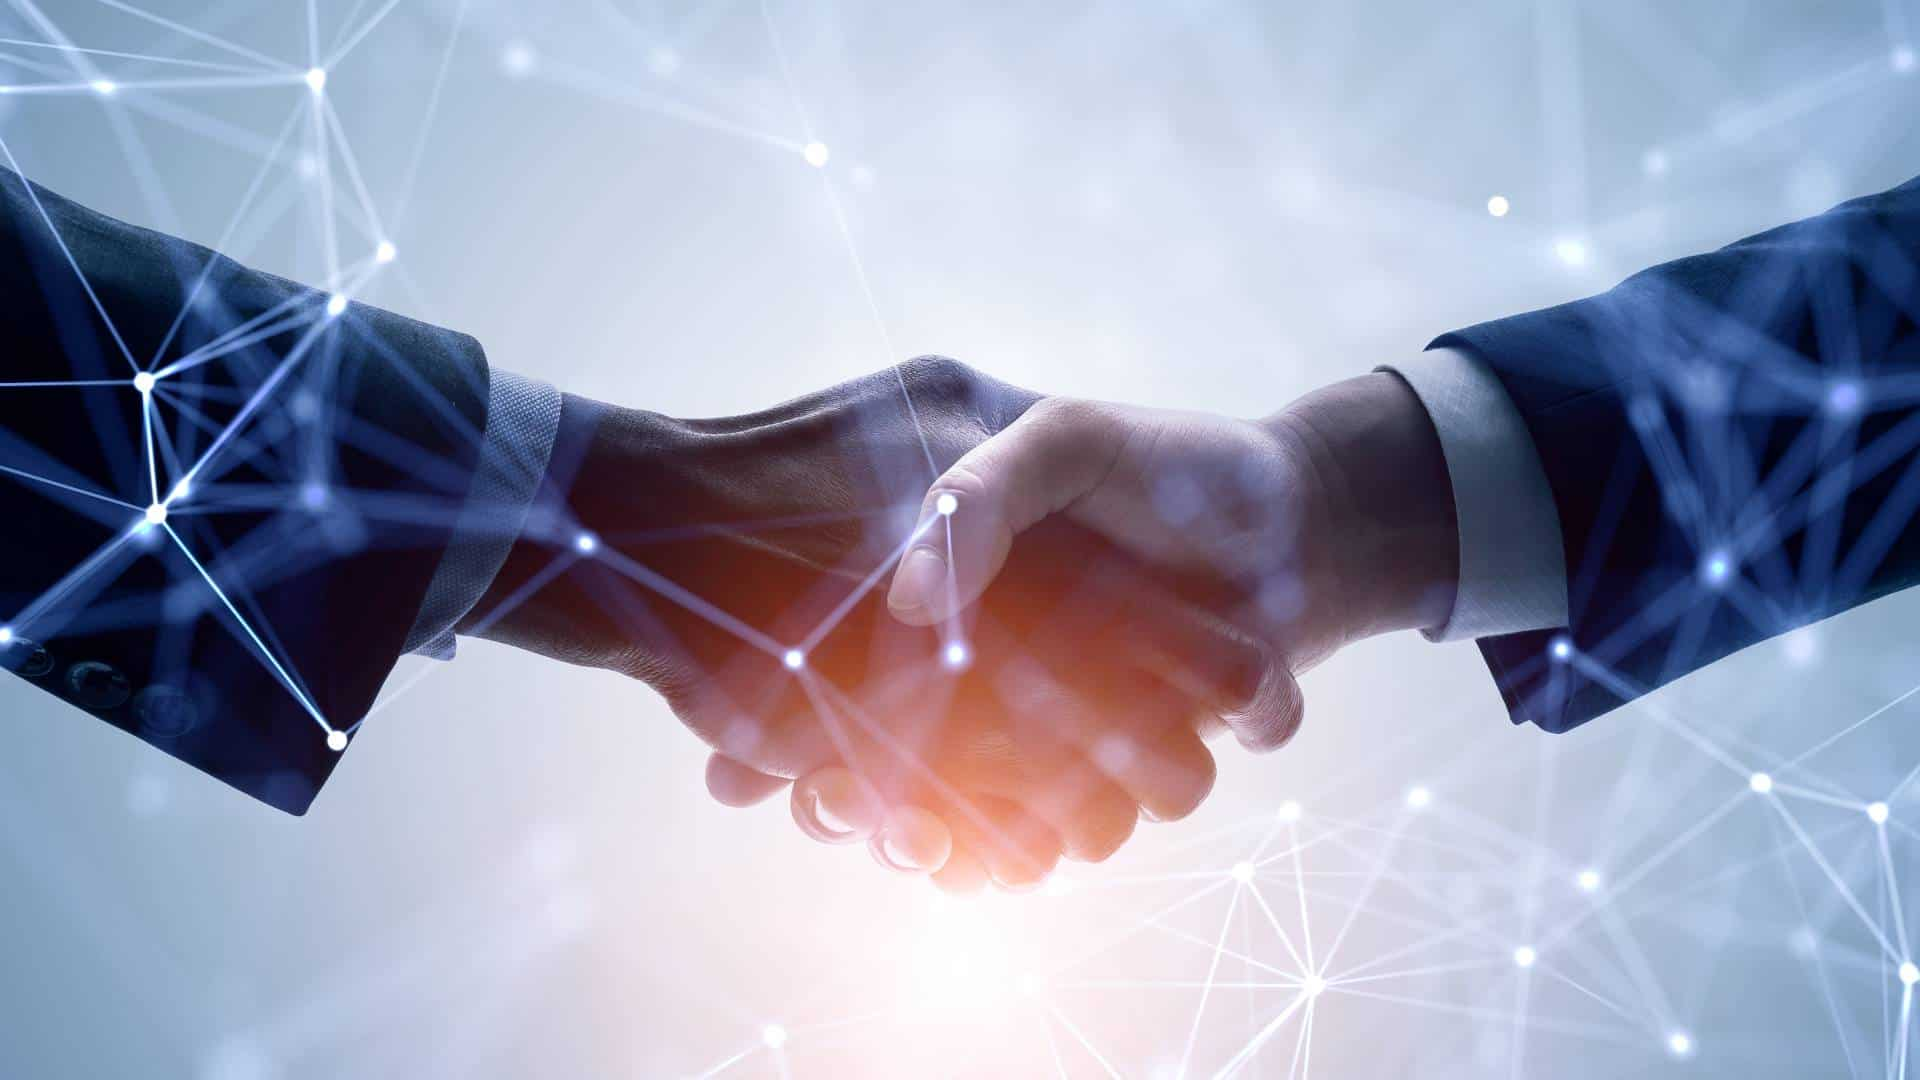 asx share price rising on deal represented by hand shake